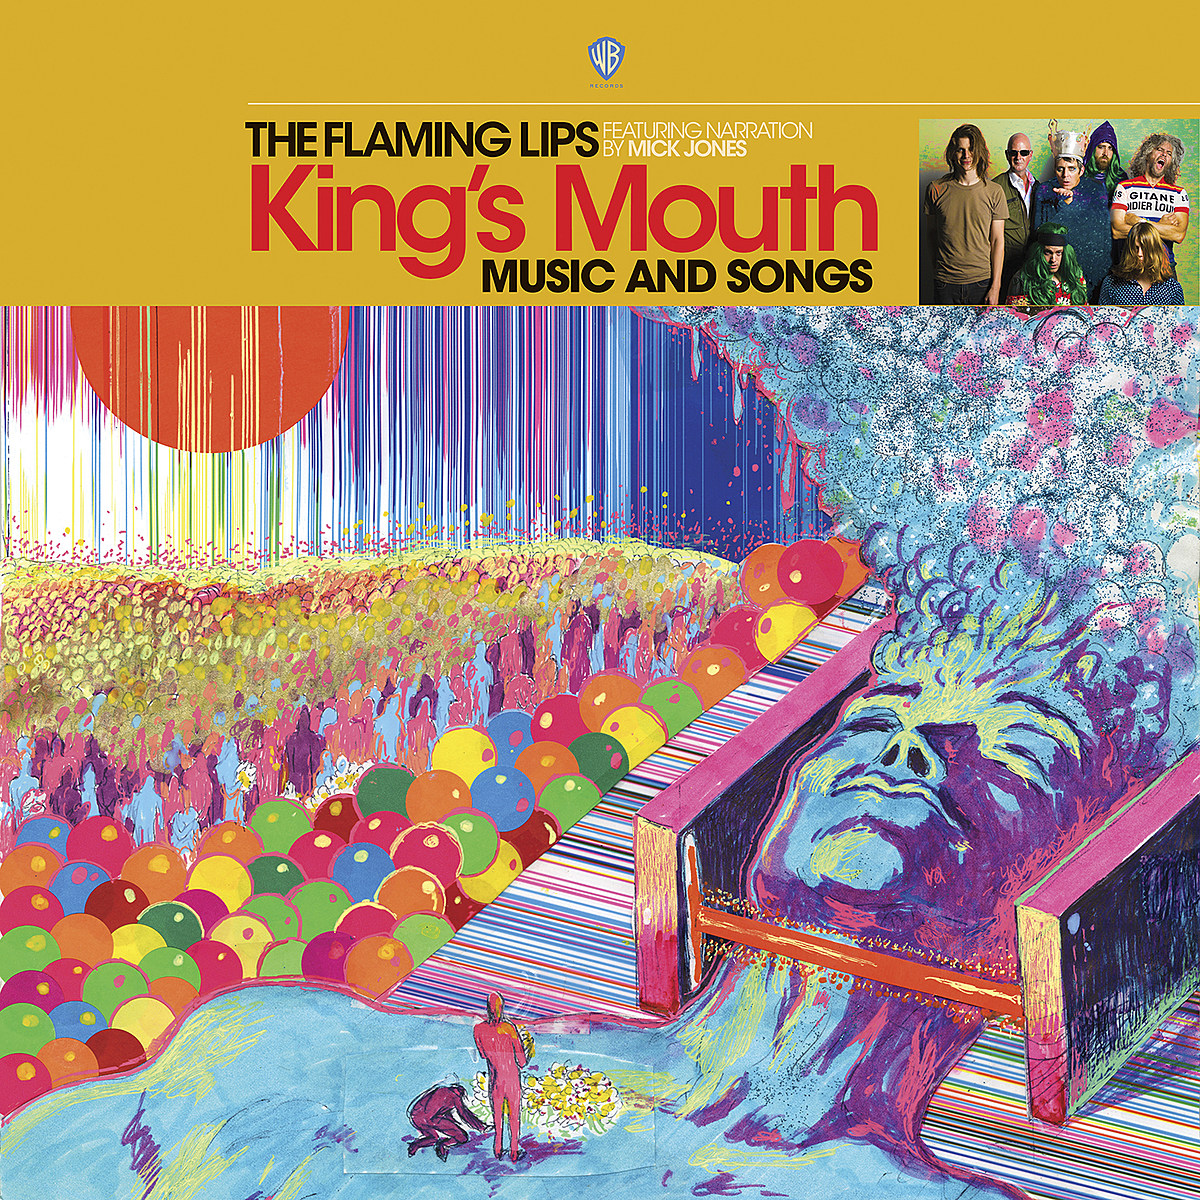 The Flaming Lips' terrific 'King's Mouth' brings back 'The Soft Bulletin' spirit